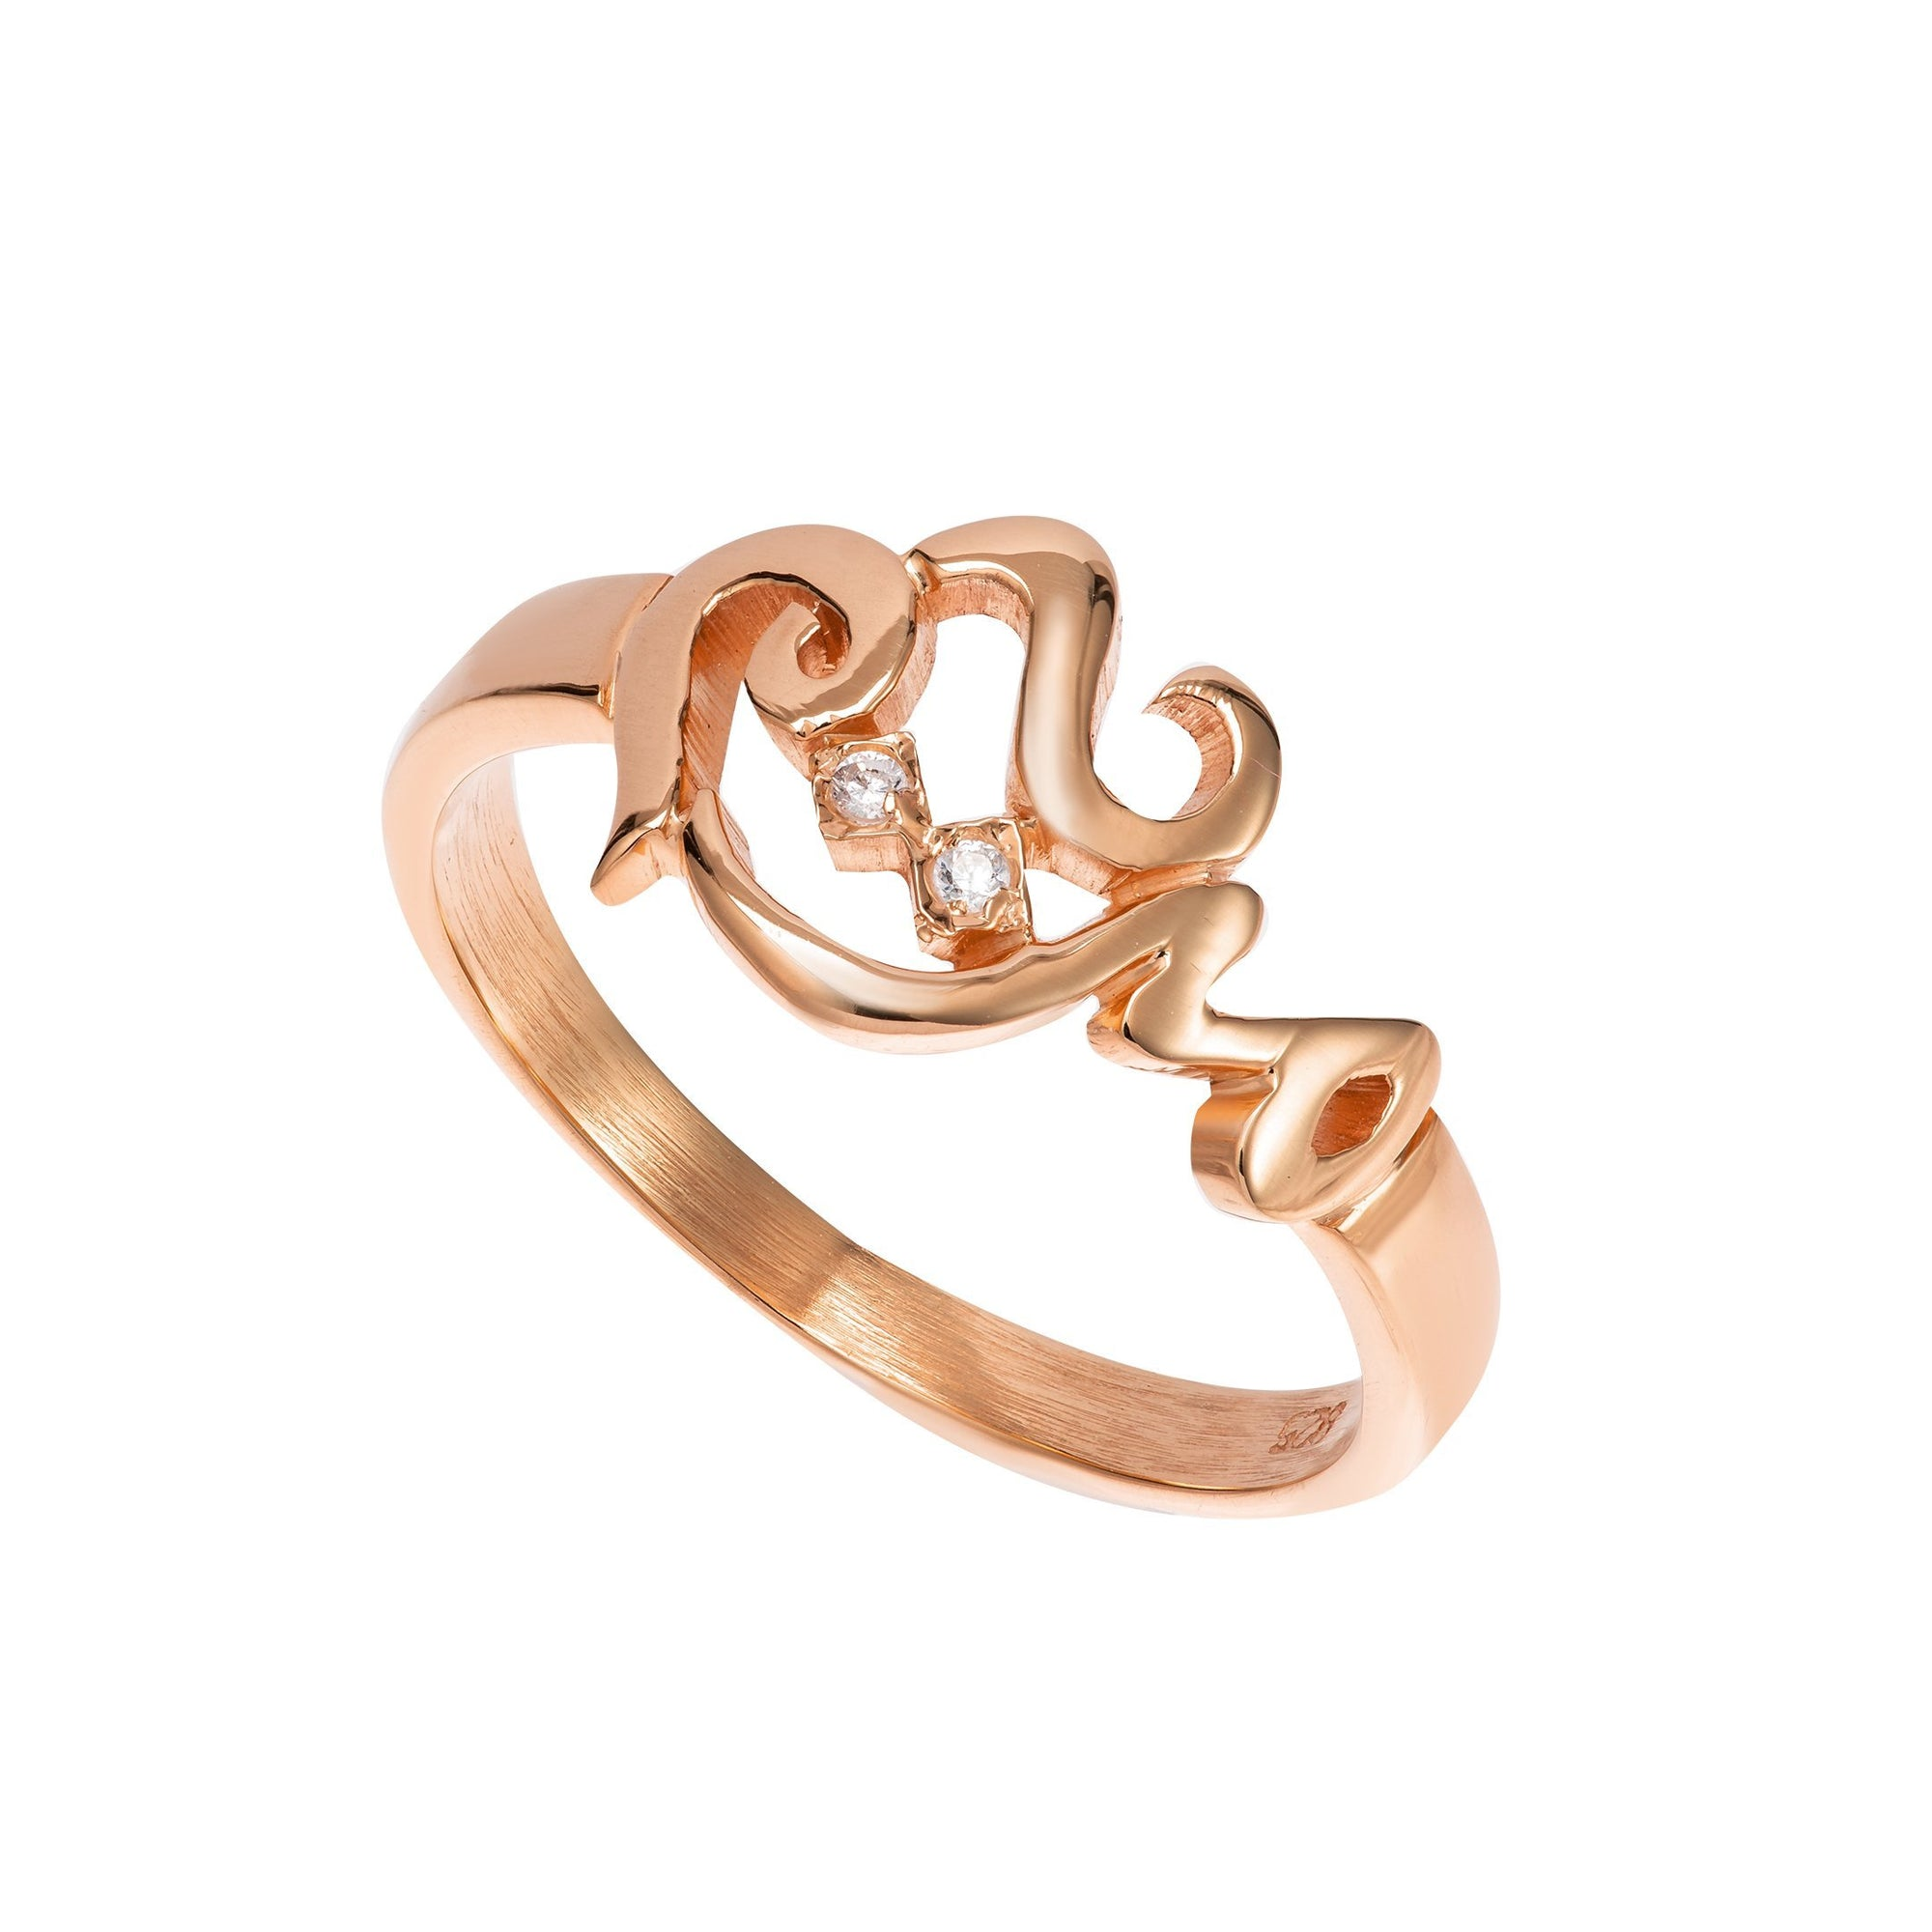 Maryam Personalized Name Diamond Ring In 18k Gold